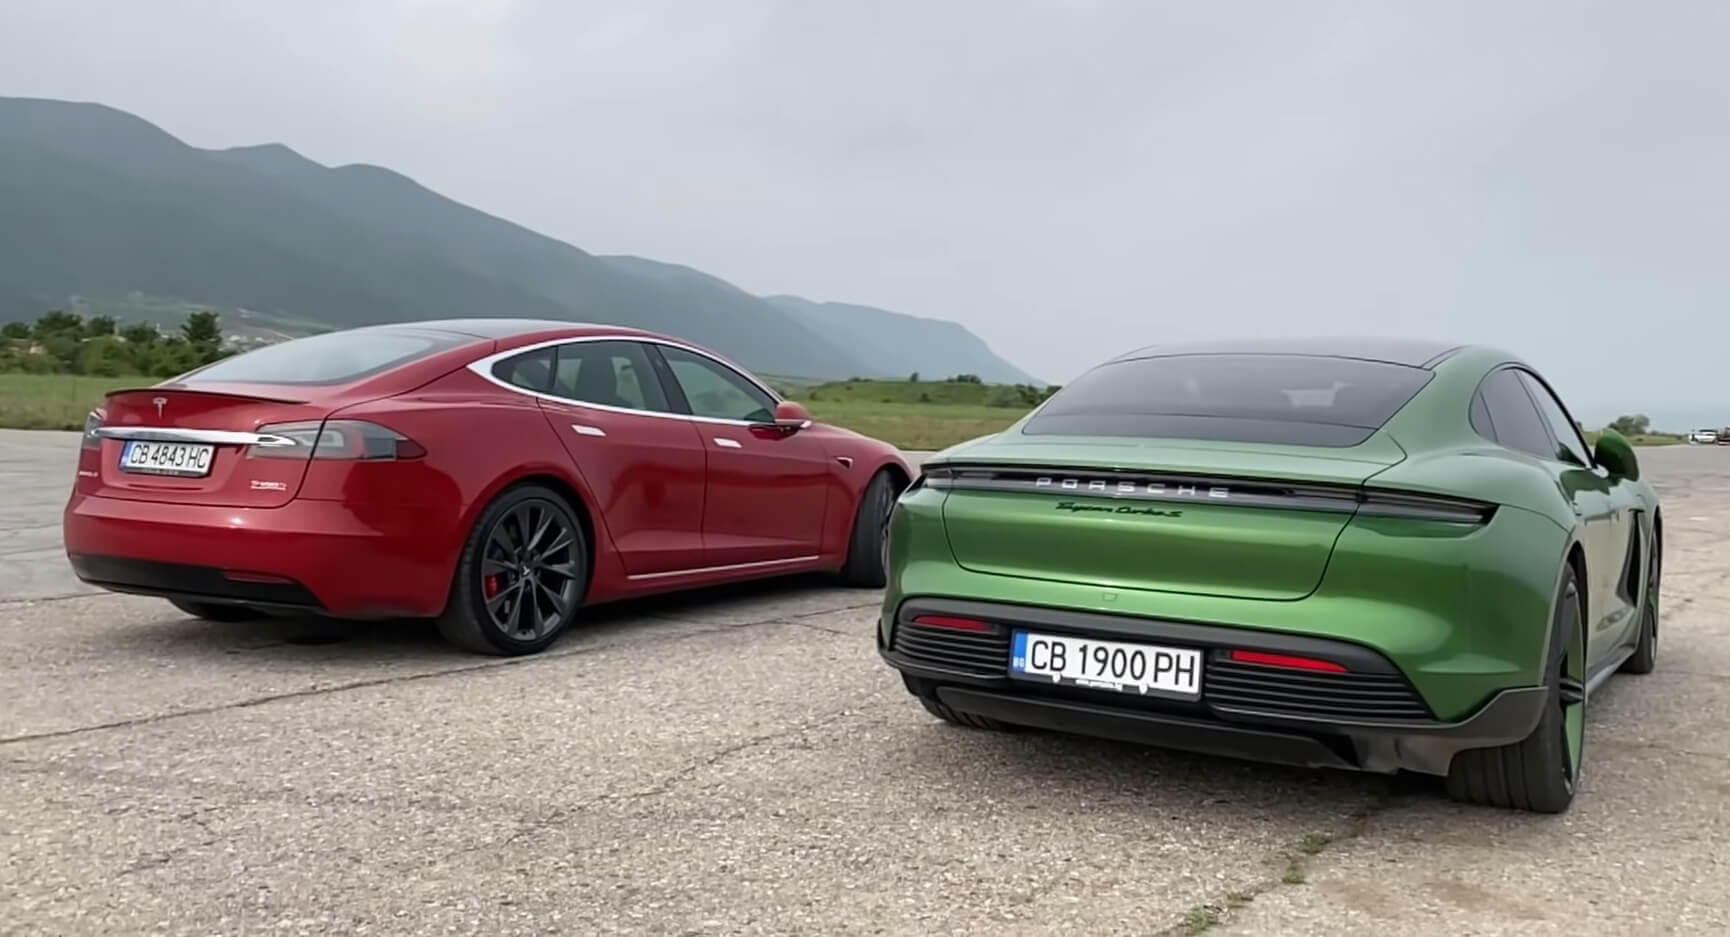 Porsche Taycan Turbo S vs. Tesla Model S P100D